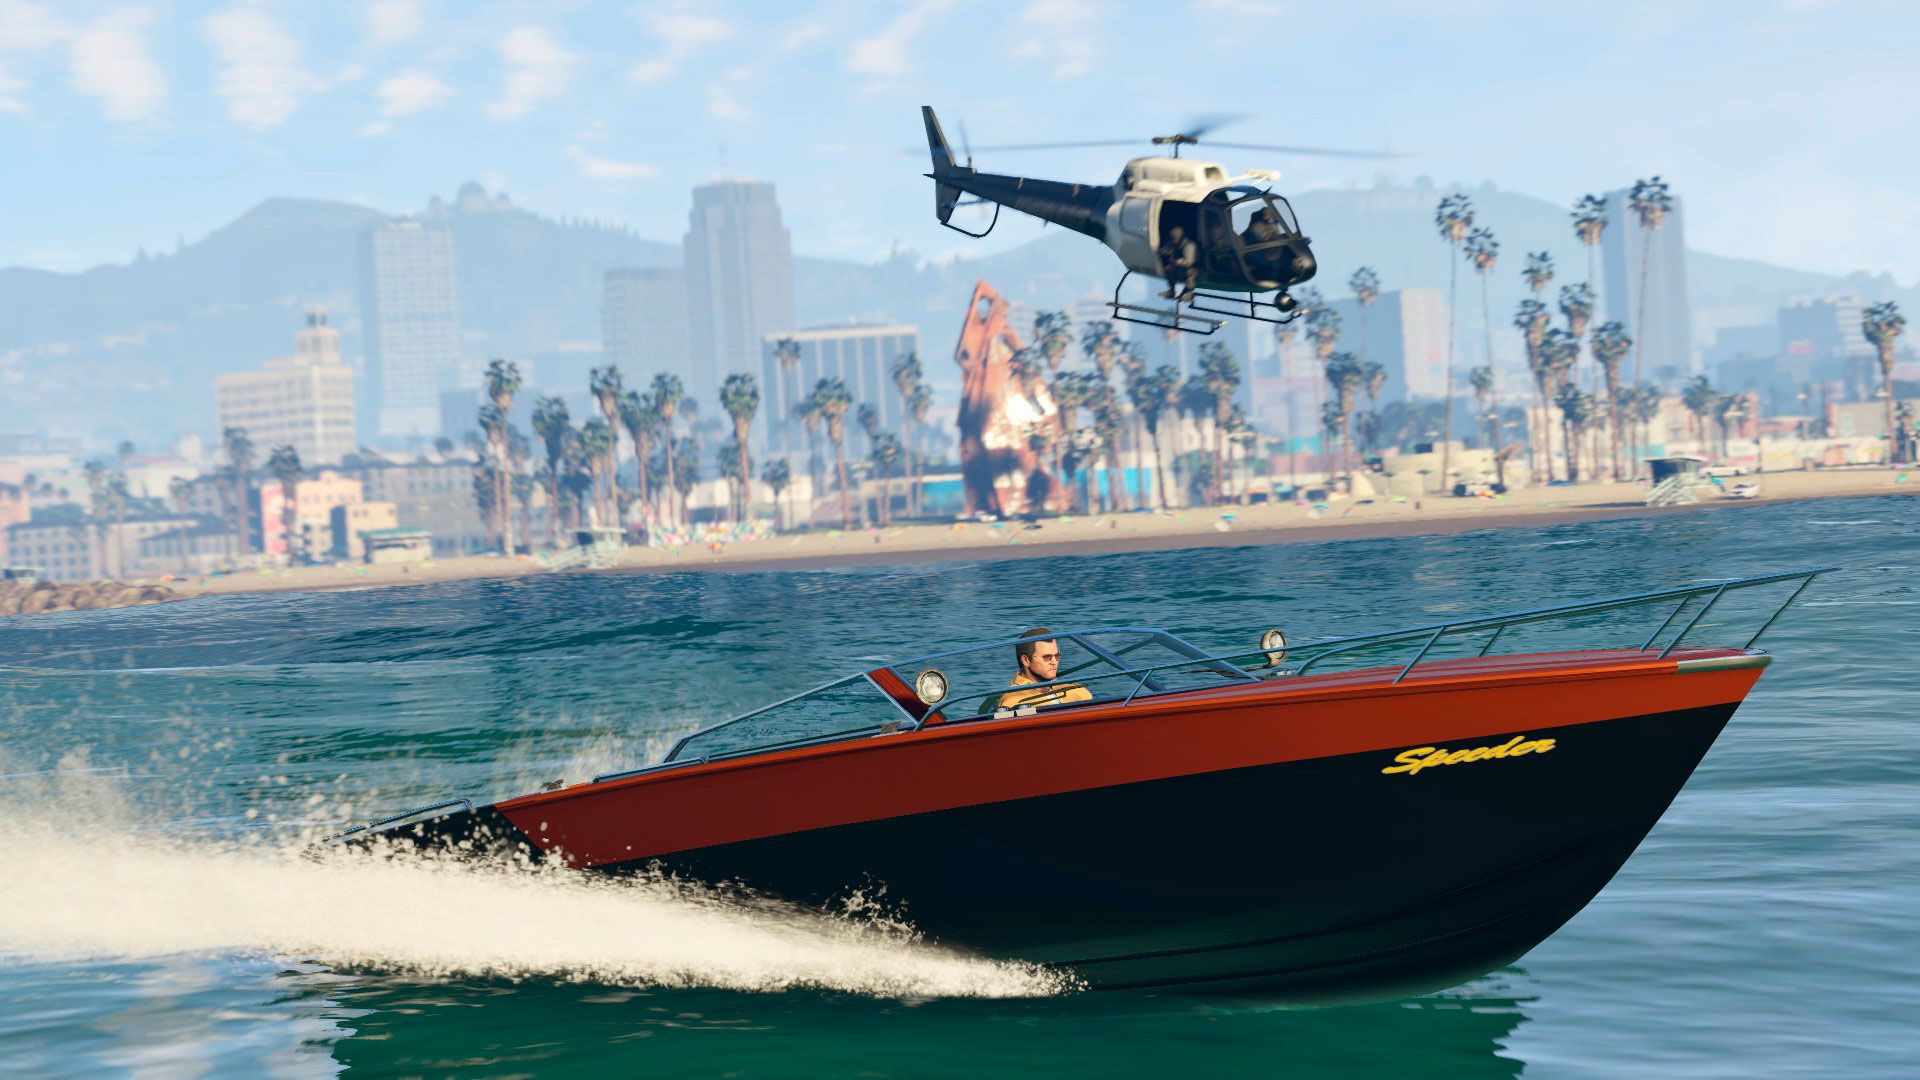 GRAND THEFT AUTlot and Images; New Images from - Collider Gta 5 pc pictures